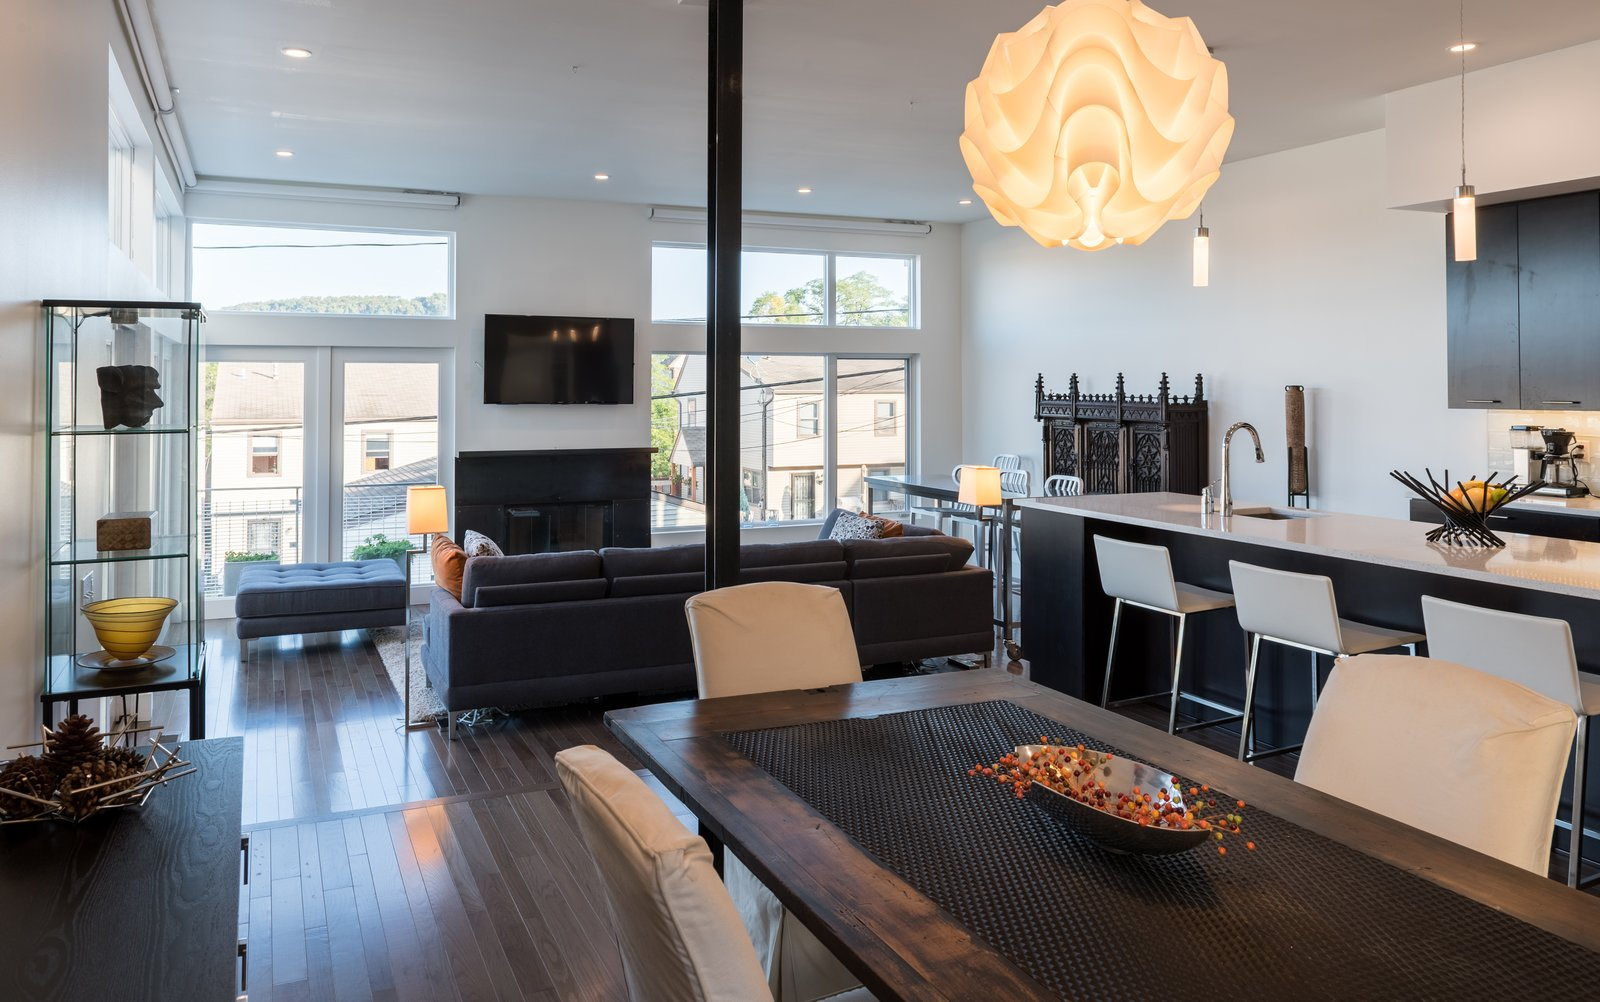 A large, open plan great room containing the kitchen, dining, and family room functions are located at the northwest portion of the floor plan, allowing for views of downtown Pittsburgh.